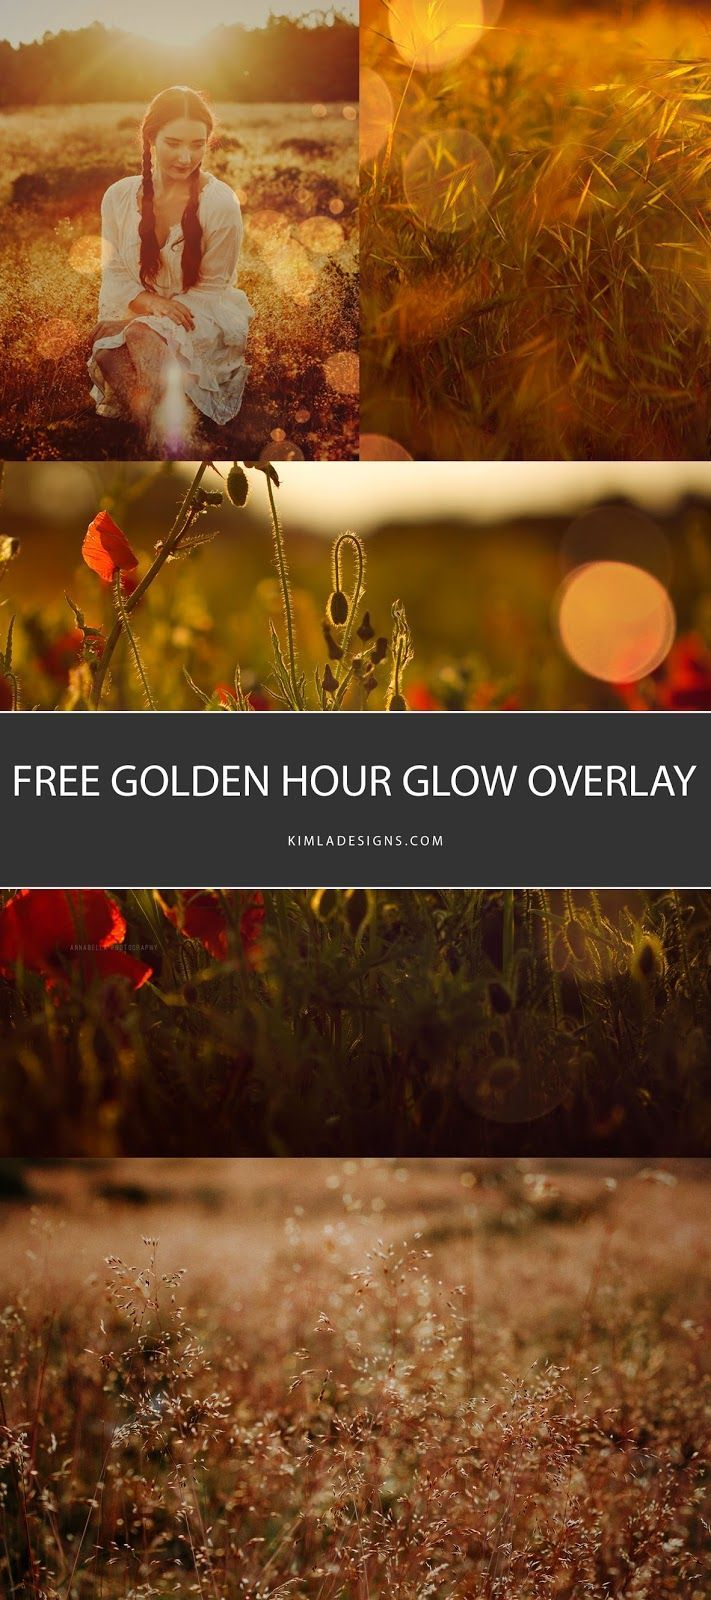 KIMLA DESIGNS: Free Golden Hour Glow Overlay for Photographers